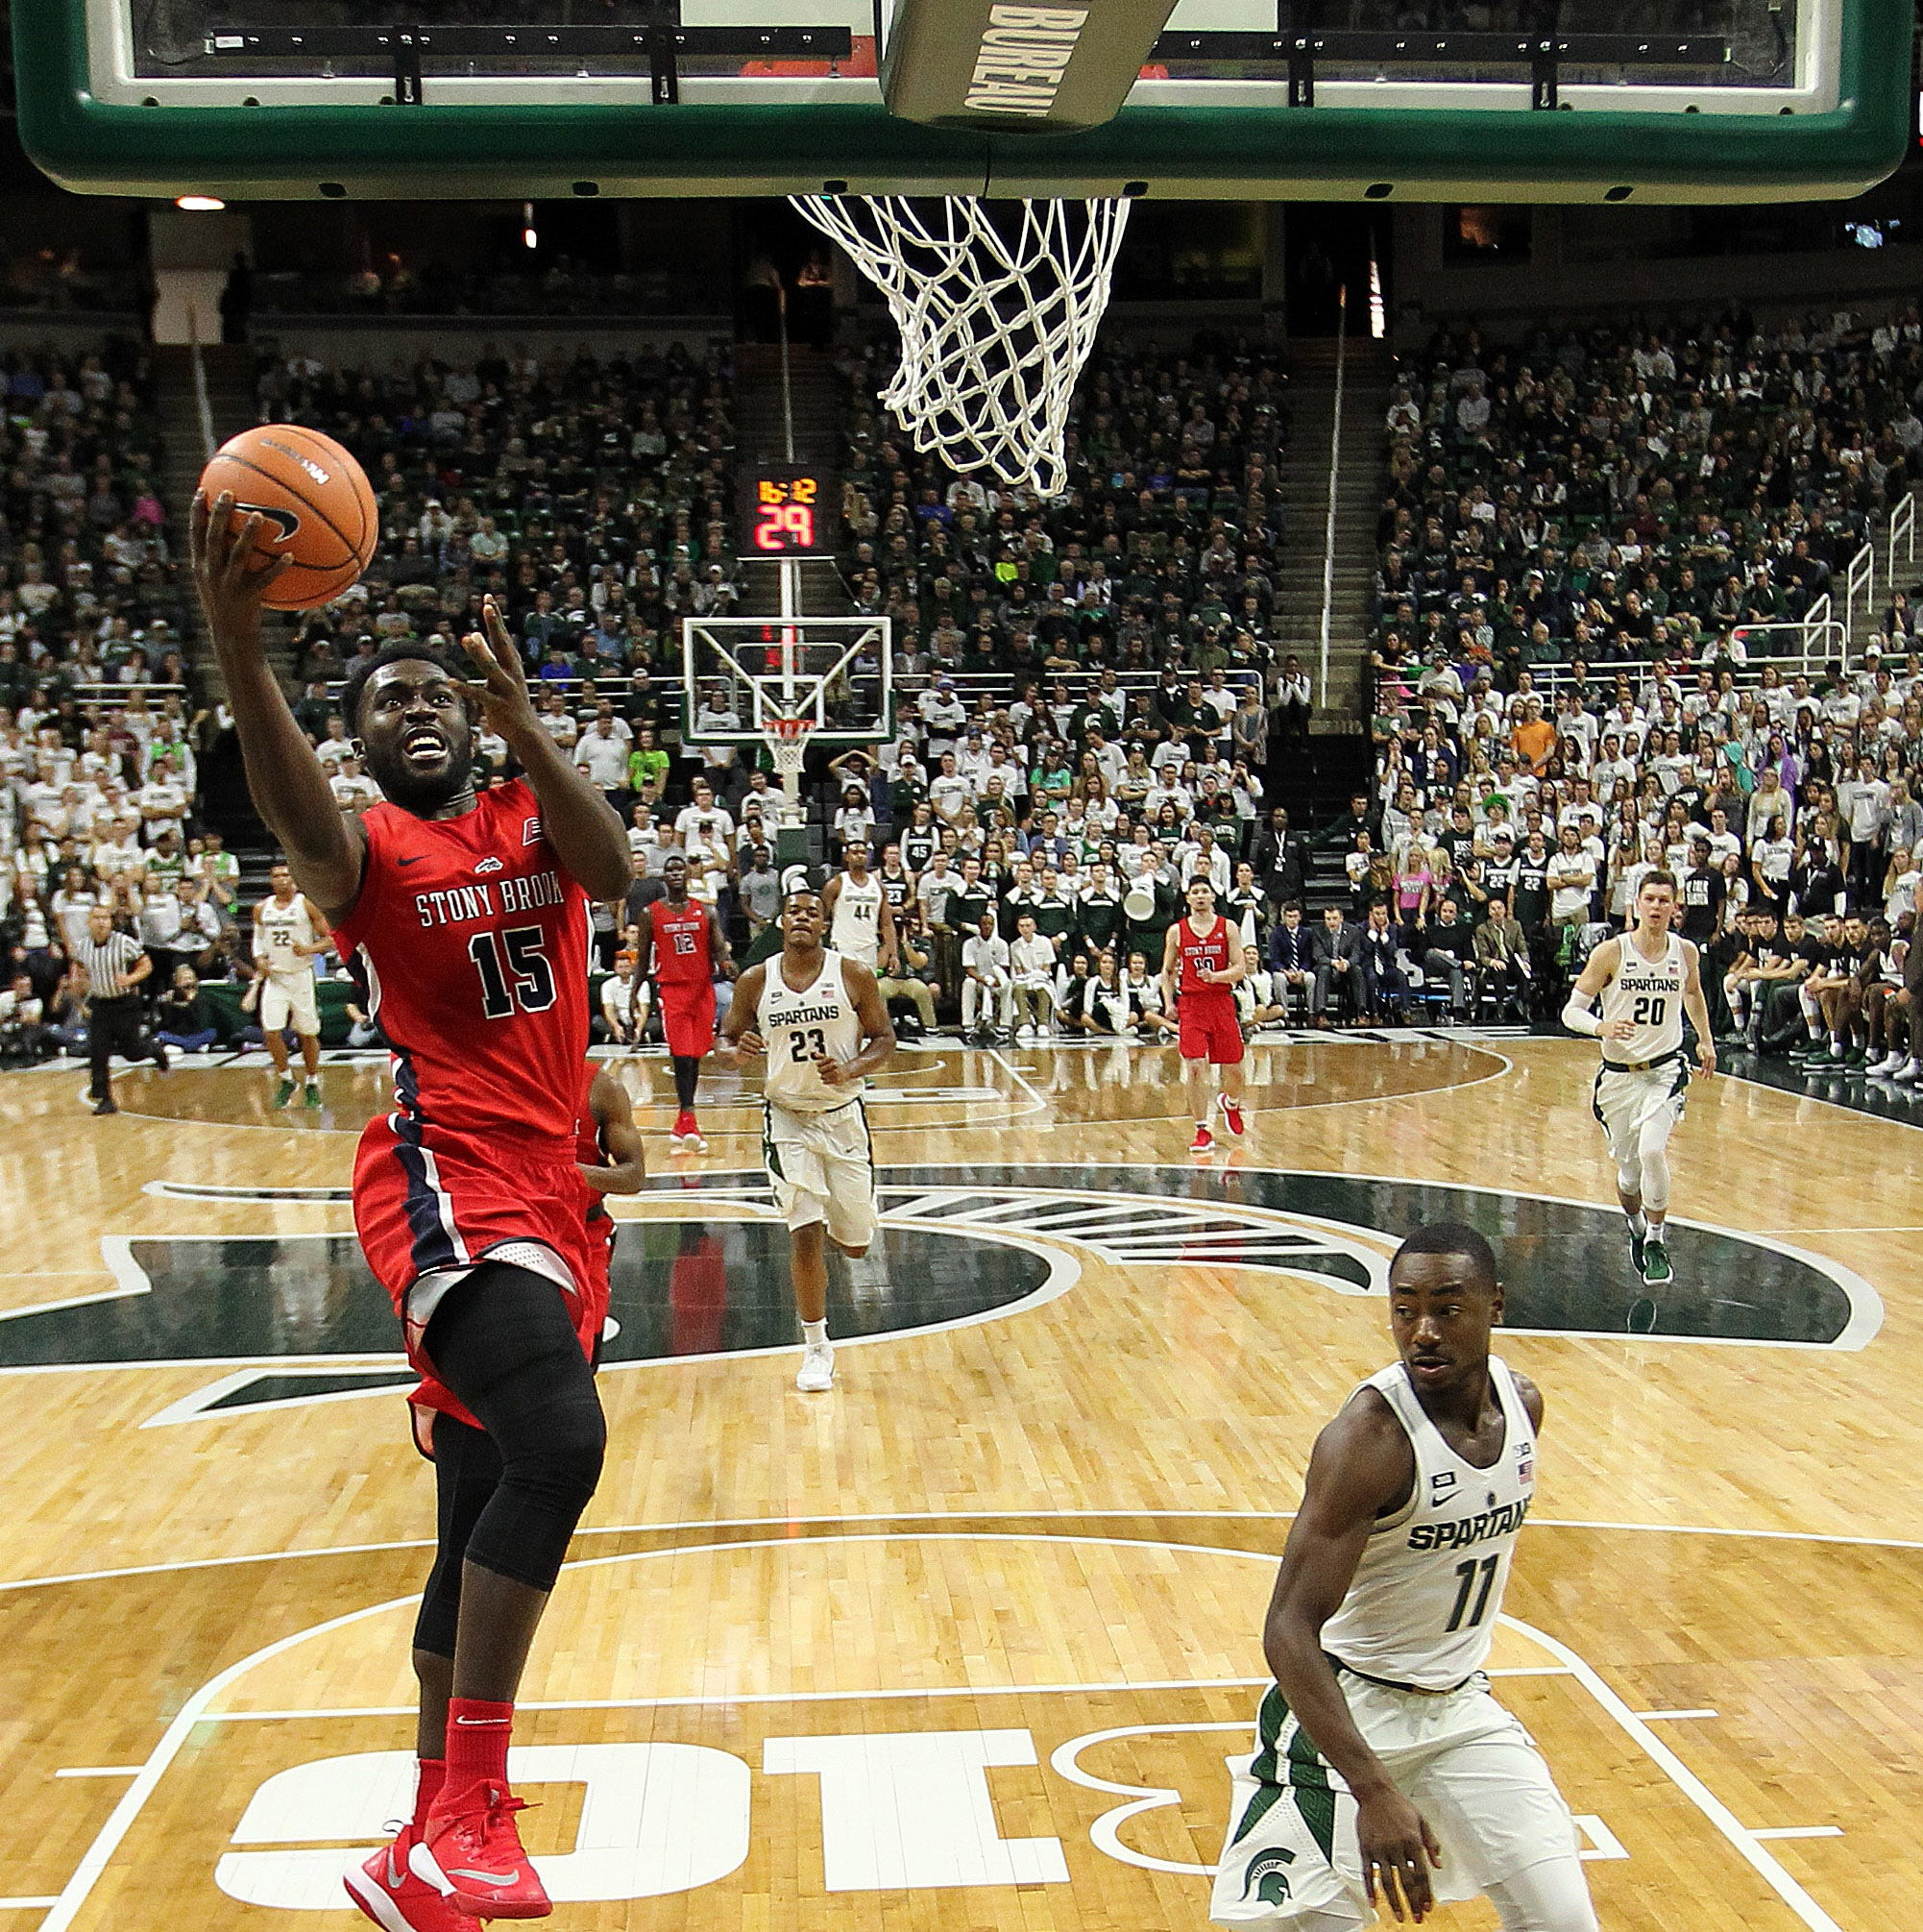 Rutgers basketball: Akwasi Yeboah, Stony Brook grad transfer, reunites with Pikiell